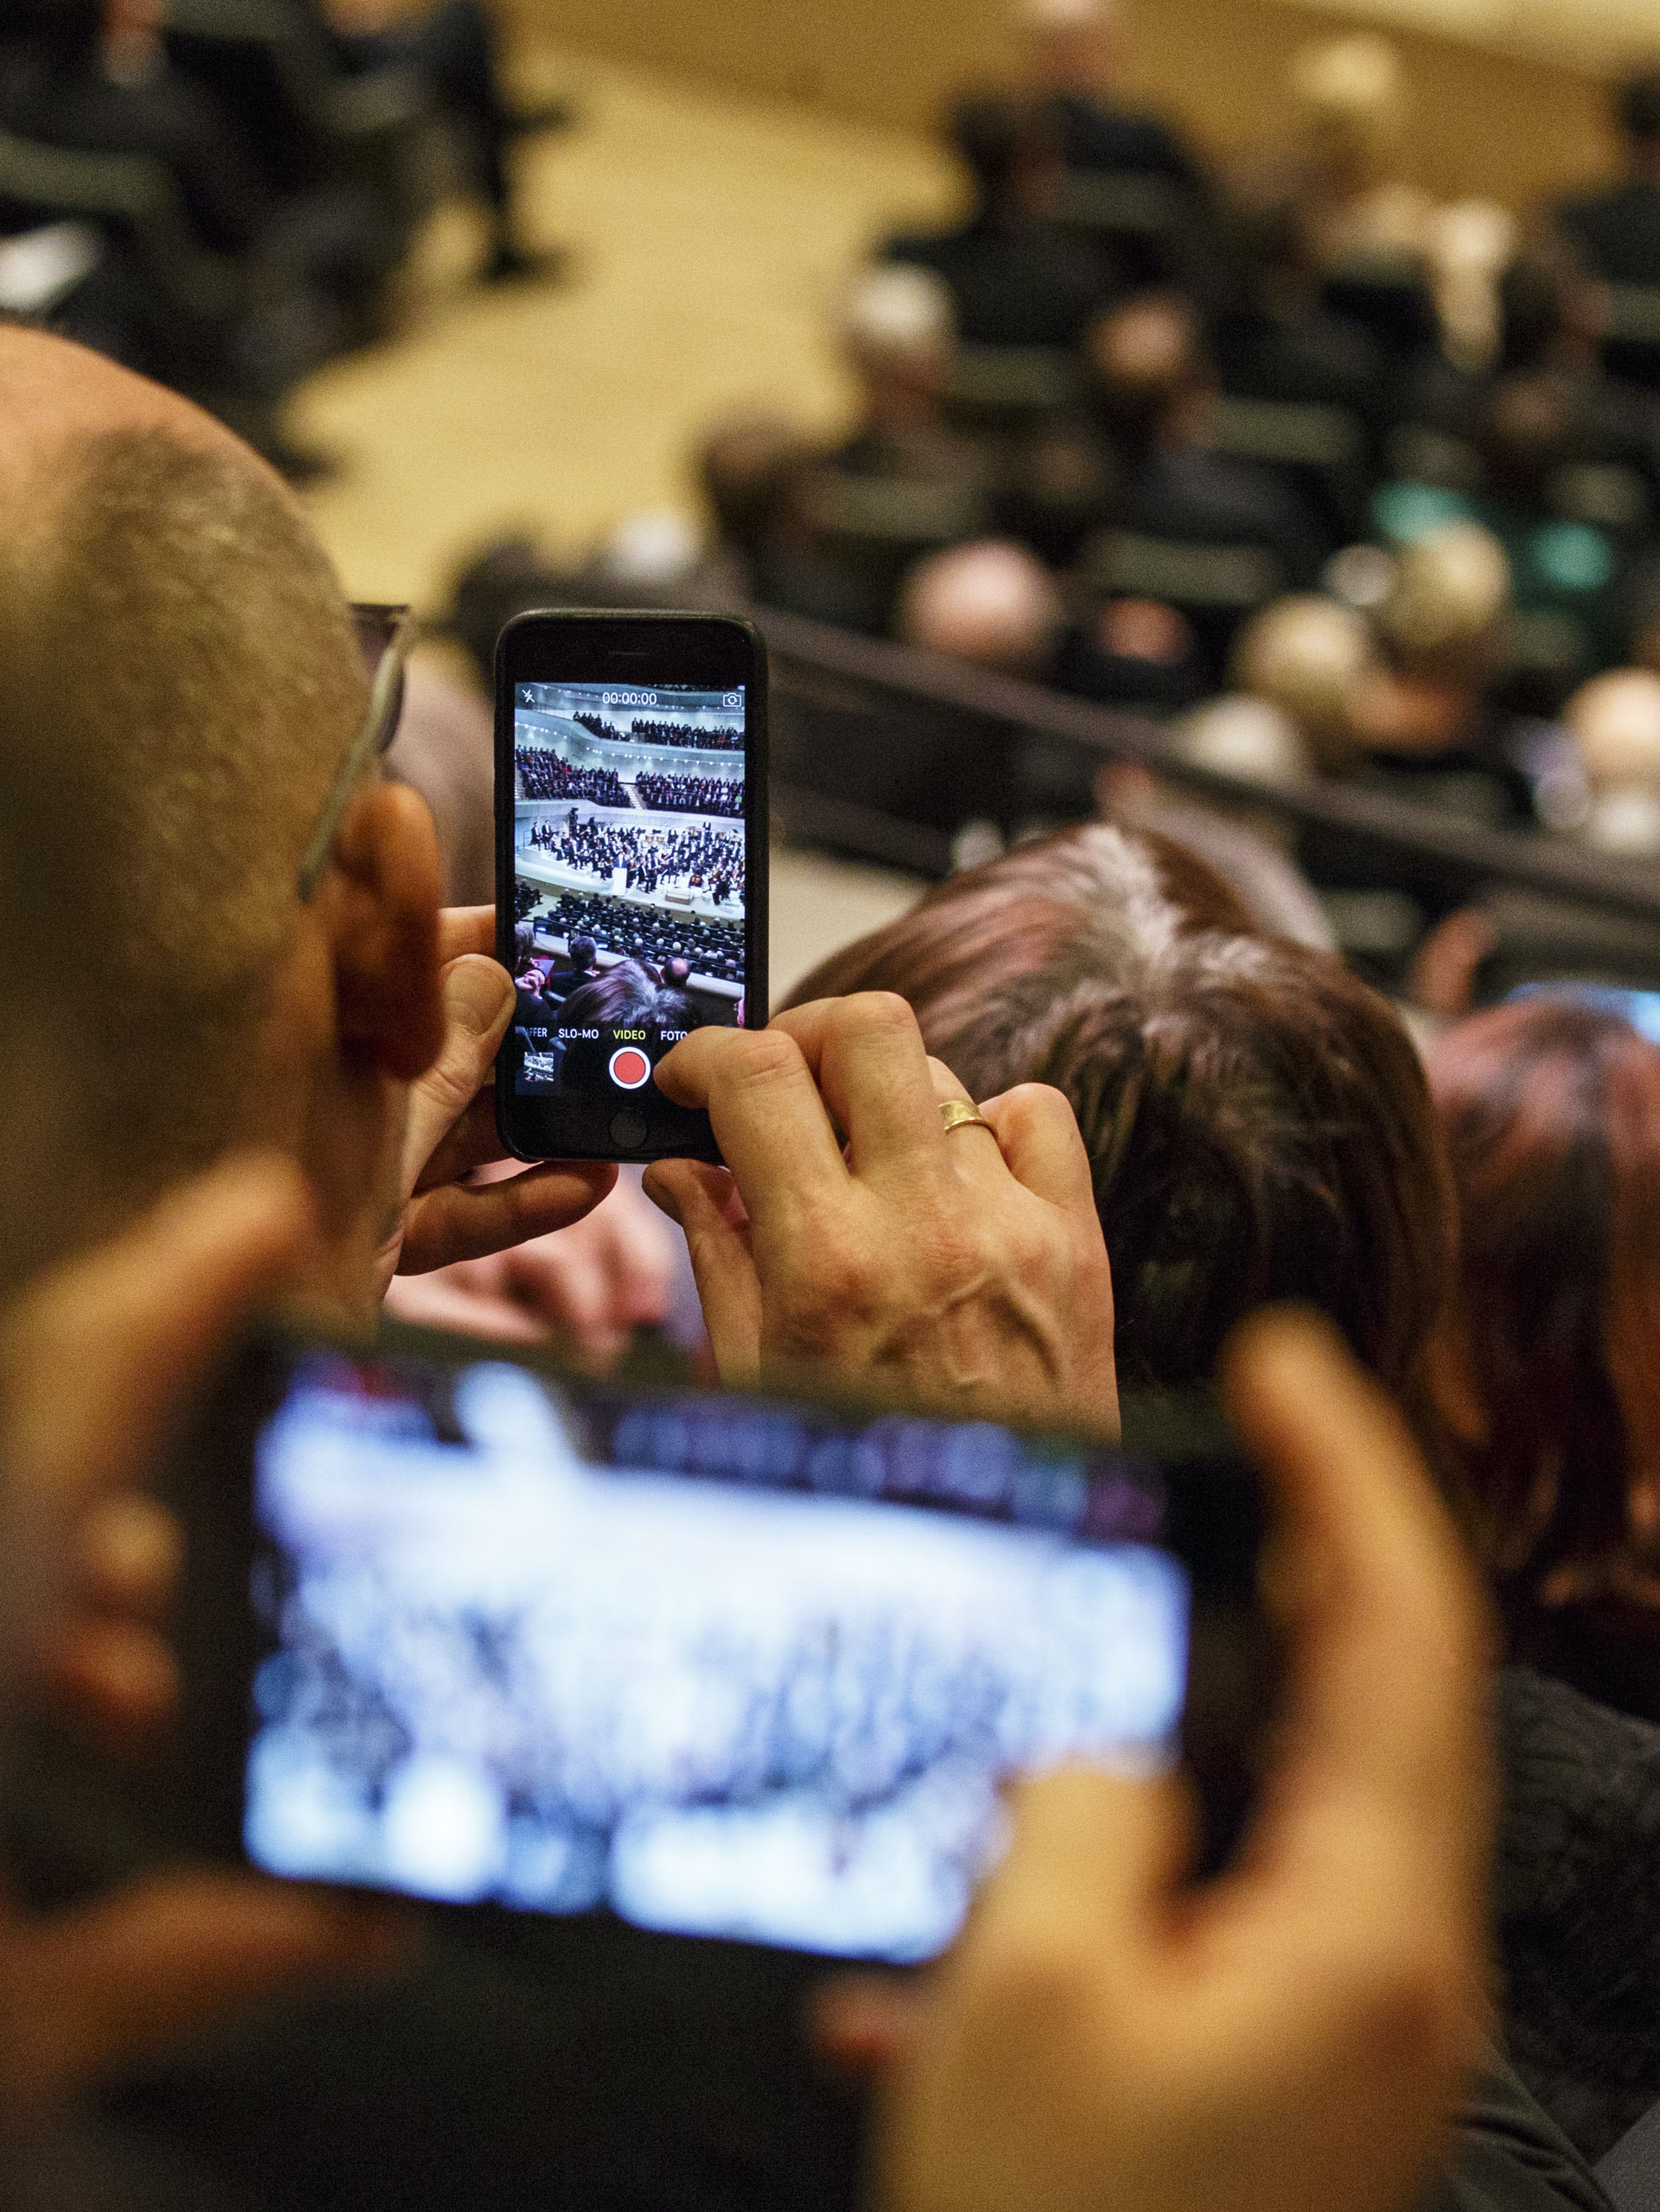 HAMBURG, GERMANY - JANUARY 11: Guest use thier smartphones as they attend the opening concert of the Elbphilharmonie concert hall on January 11, 2017 in Hamburg, Germany. Tonights opening gala comes around nine and a half years after the laying of the foundation stone, the new concert house sits ontop of an old warehouse building and is nicknamed 'Elphi' (Photo by Morris MacMatzen - Pool/Getty Images)